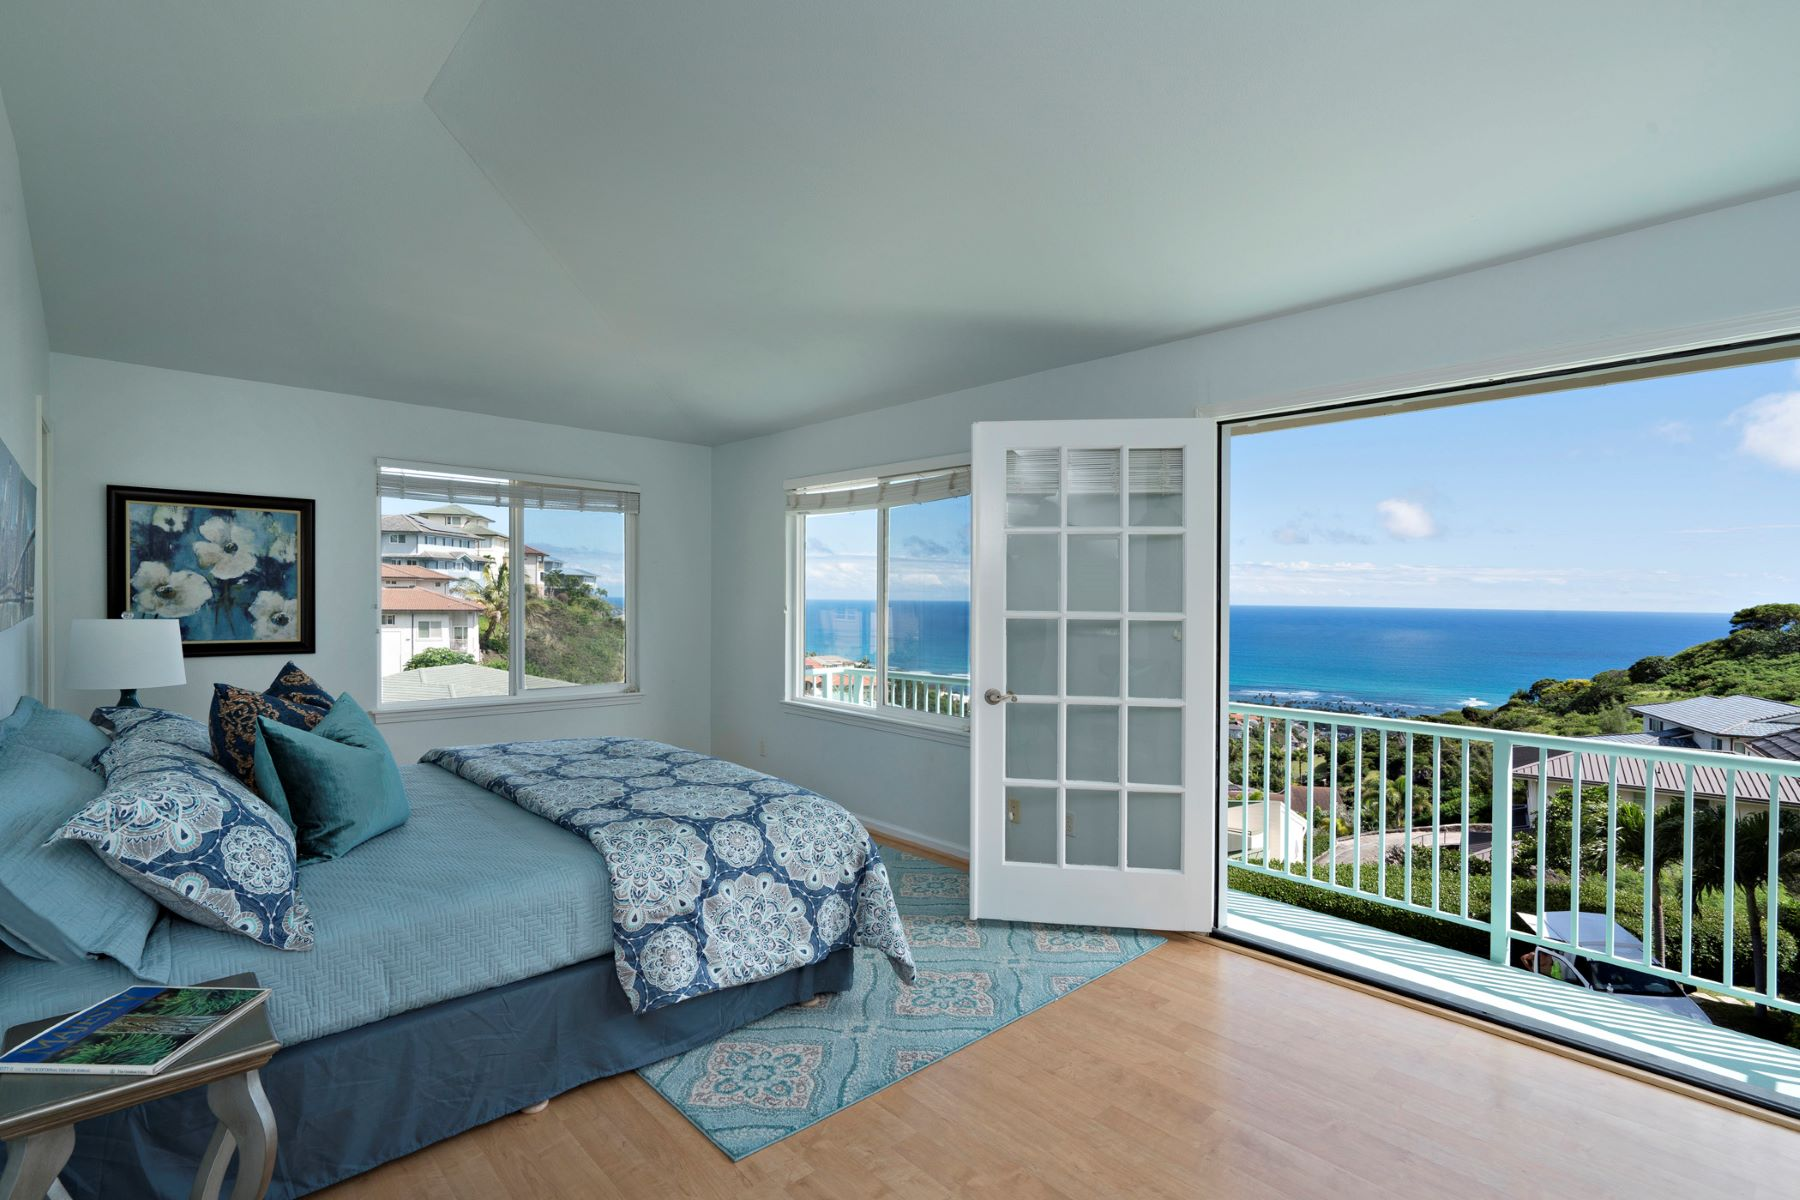 Additional photo for property listing at Hilltop Ocean Views 5496 Poola St Honolulu, Hawaii 96821 United States